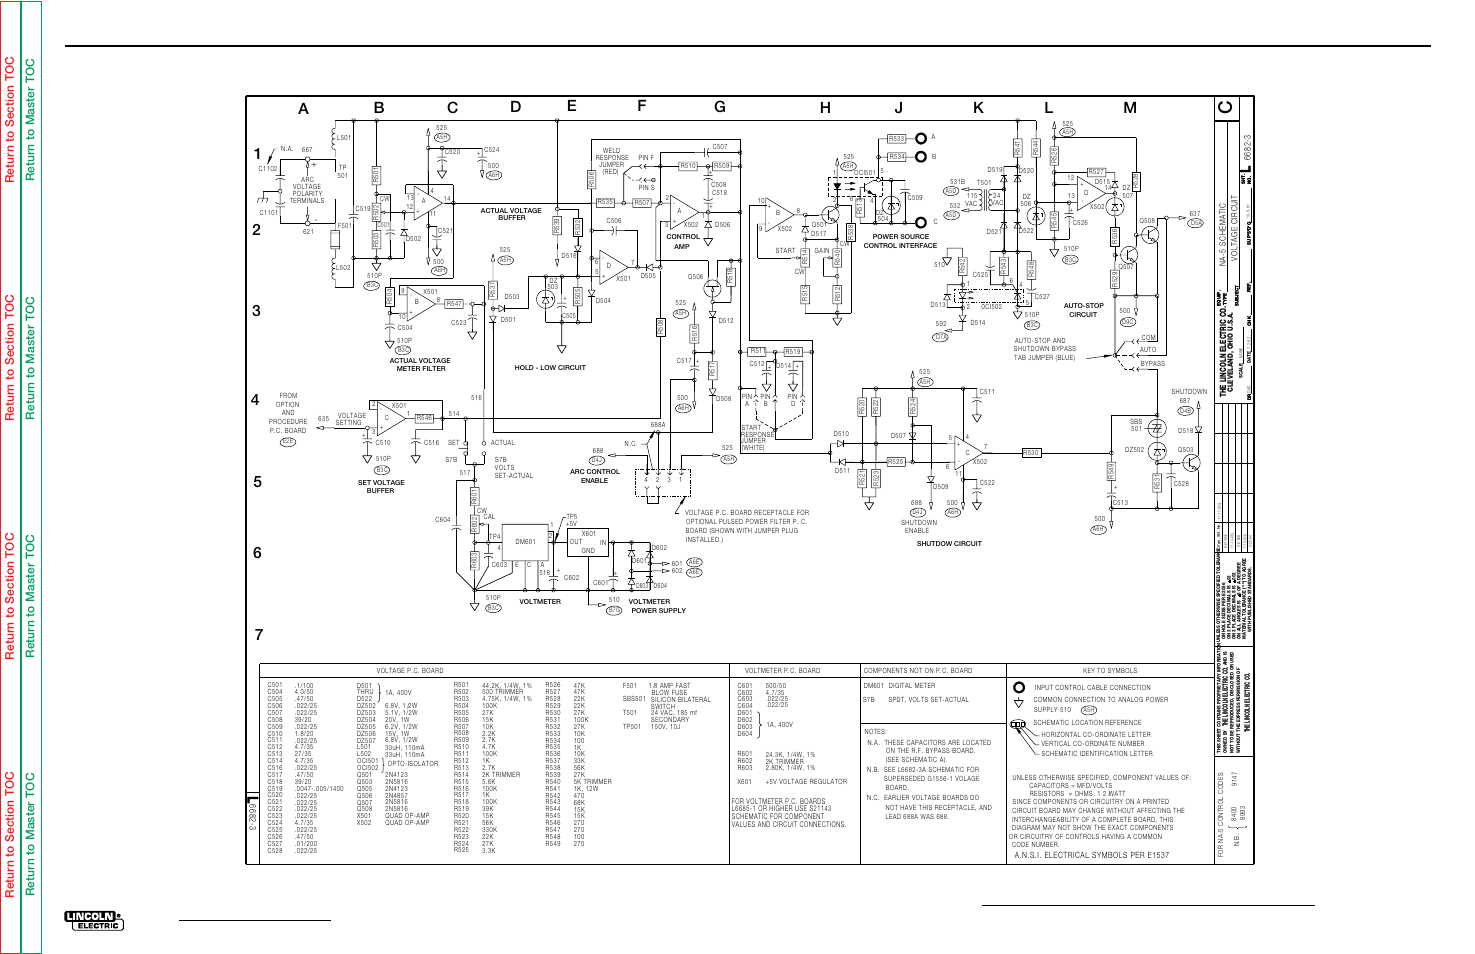 Electrical diagrams, Voltage pc board schematic, Na-5